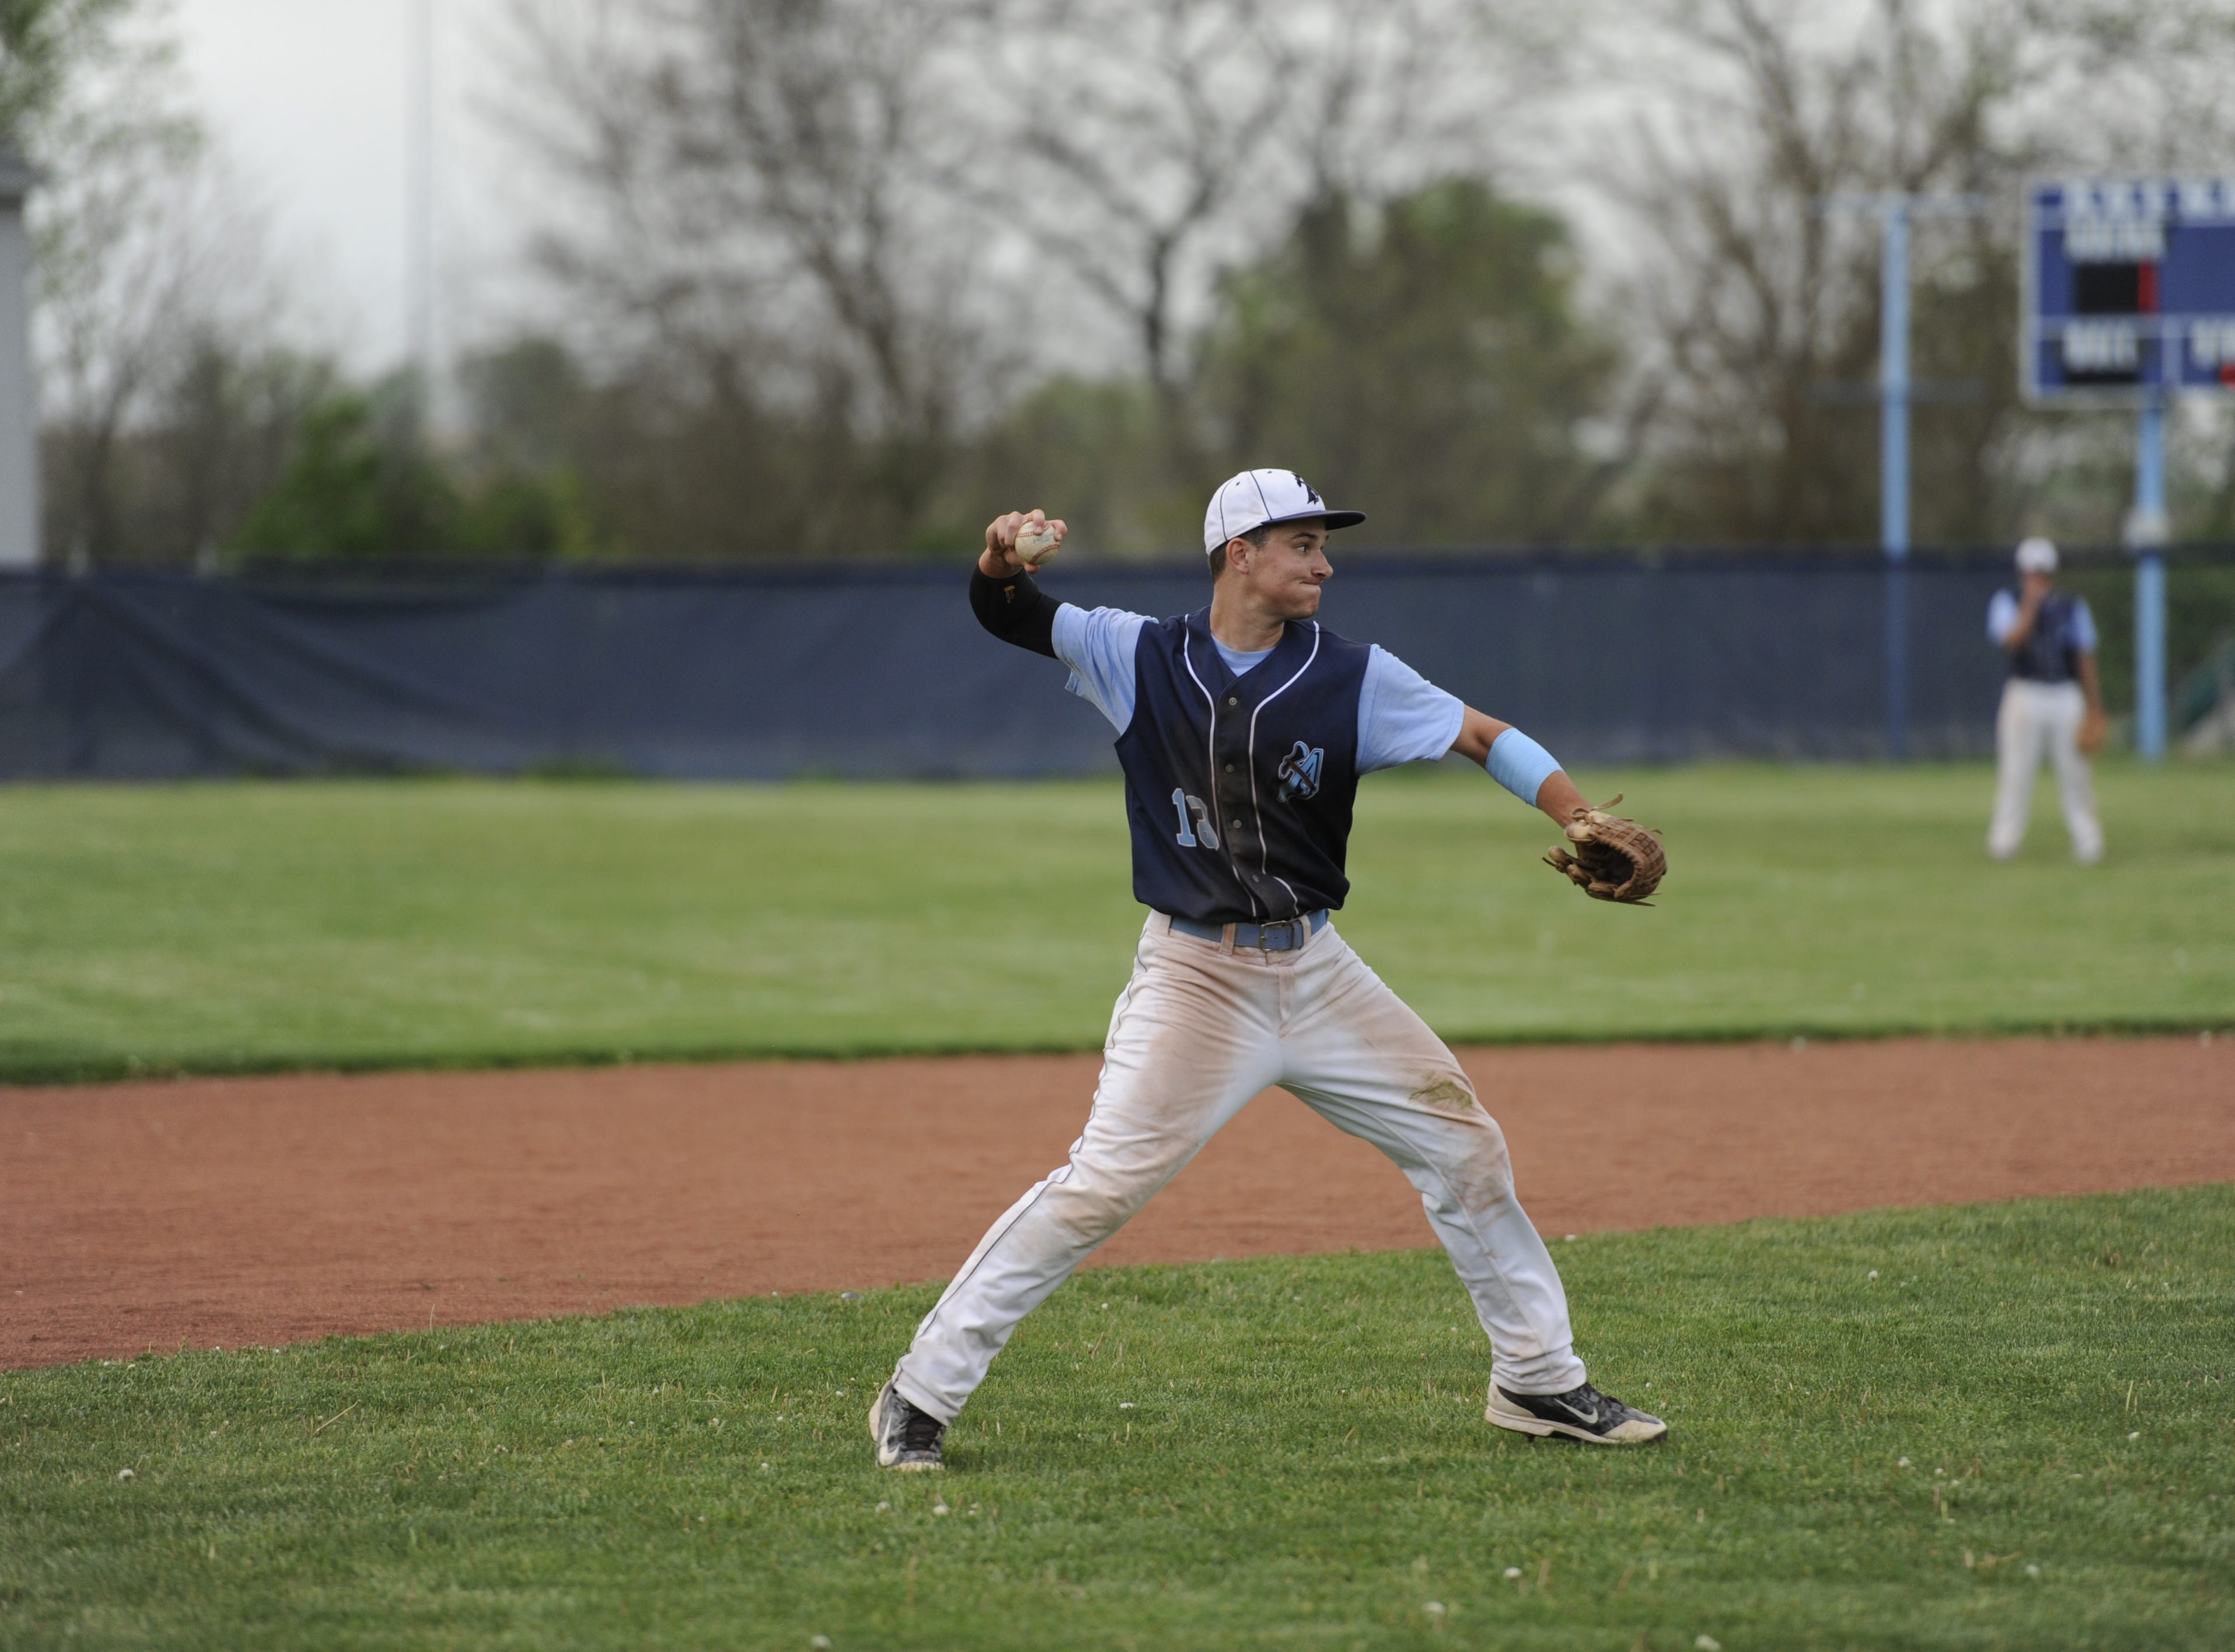 Adena boy's baseball played against Paint Valley at Adena on Monday. The final score was Adena _, Paint Valley _.